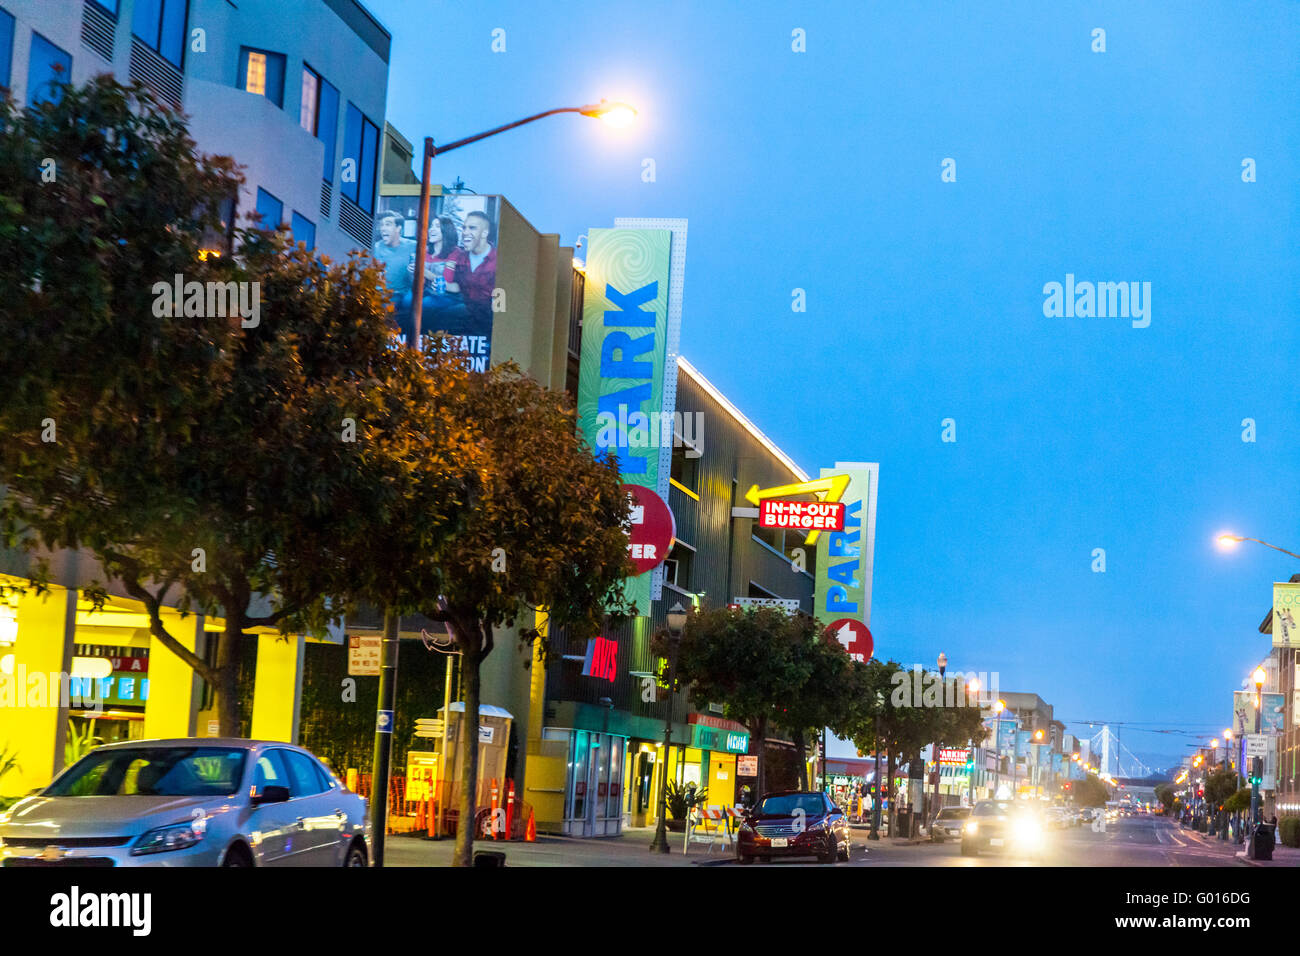 A Row of Shops with an IN-N-Out Hamburger store on Beach Street near Fisherman's Wharf in San Francisco California - Stock Image